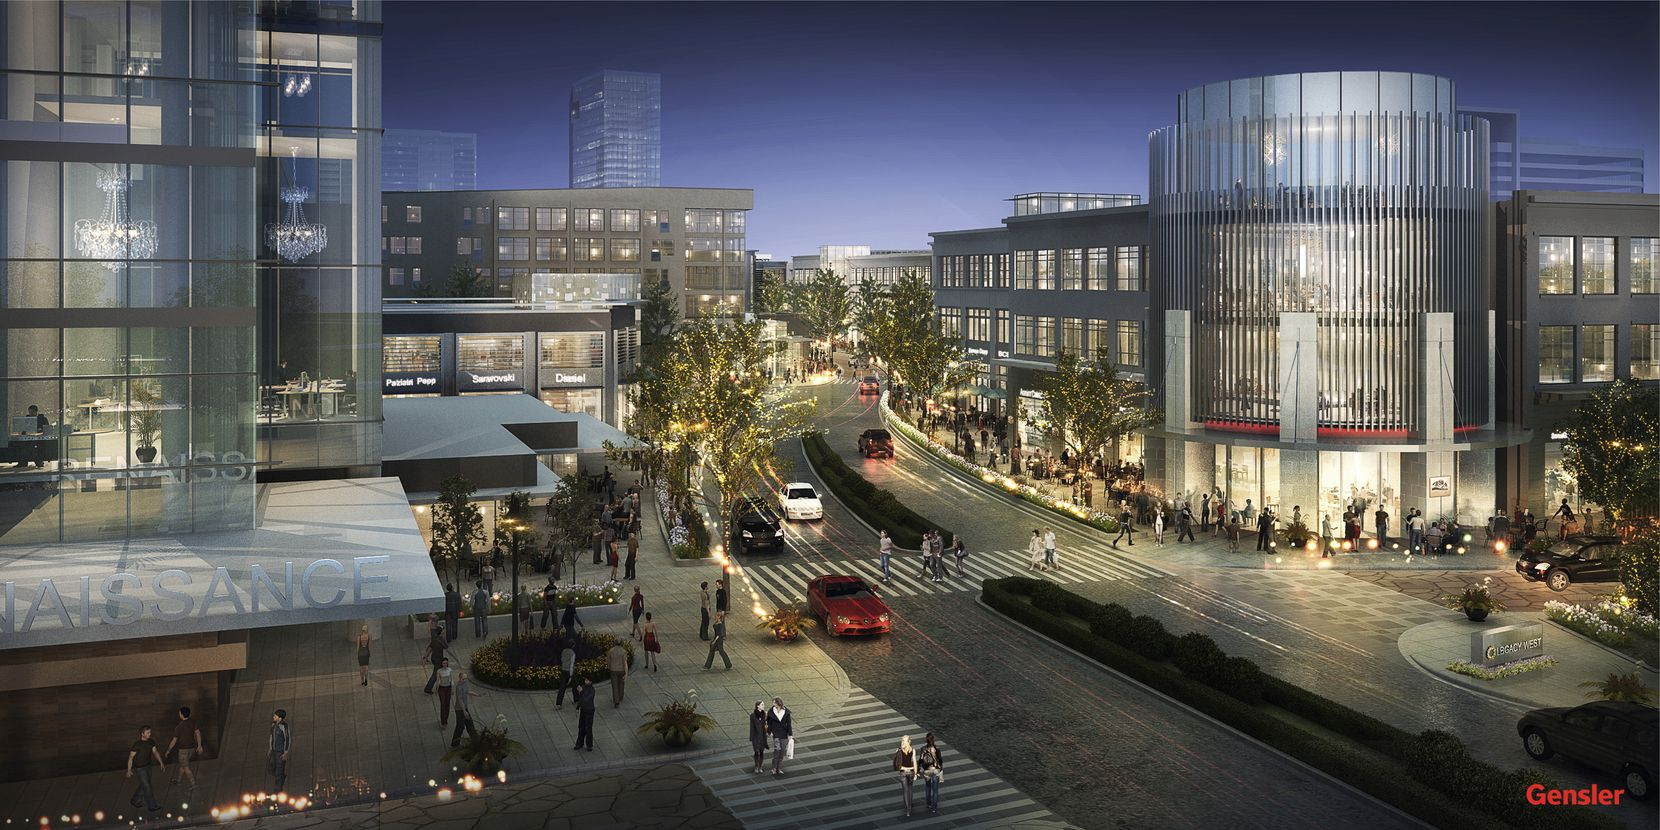 Work will start in February on the first phase of the $2 billion Legacy West mixed-use development in Plano. 11042014xBIZ